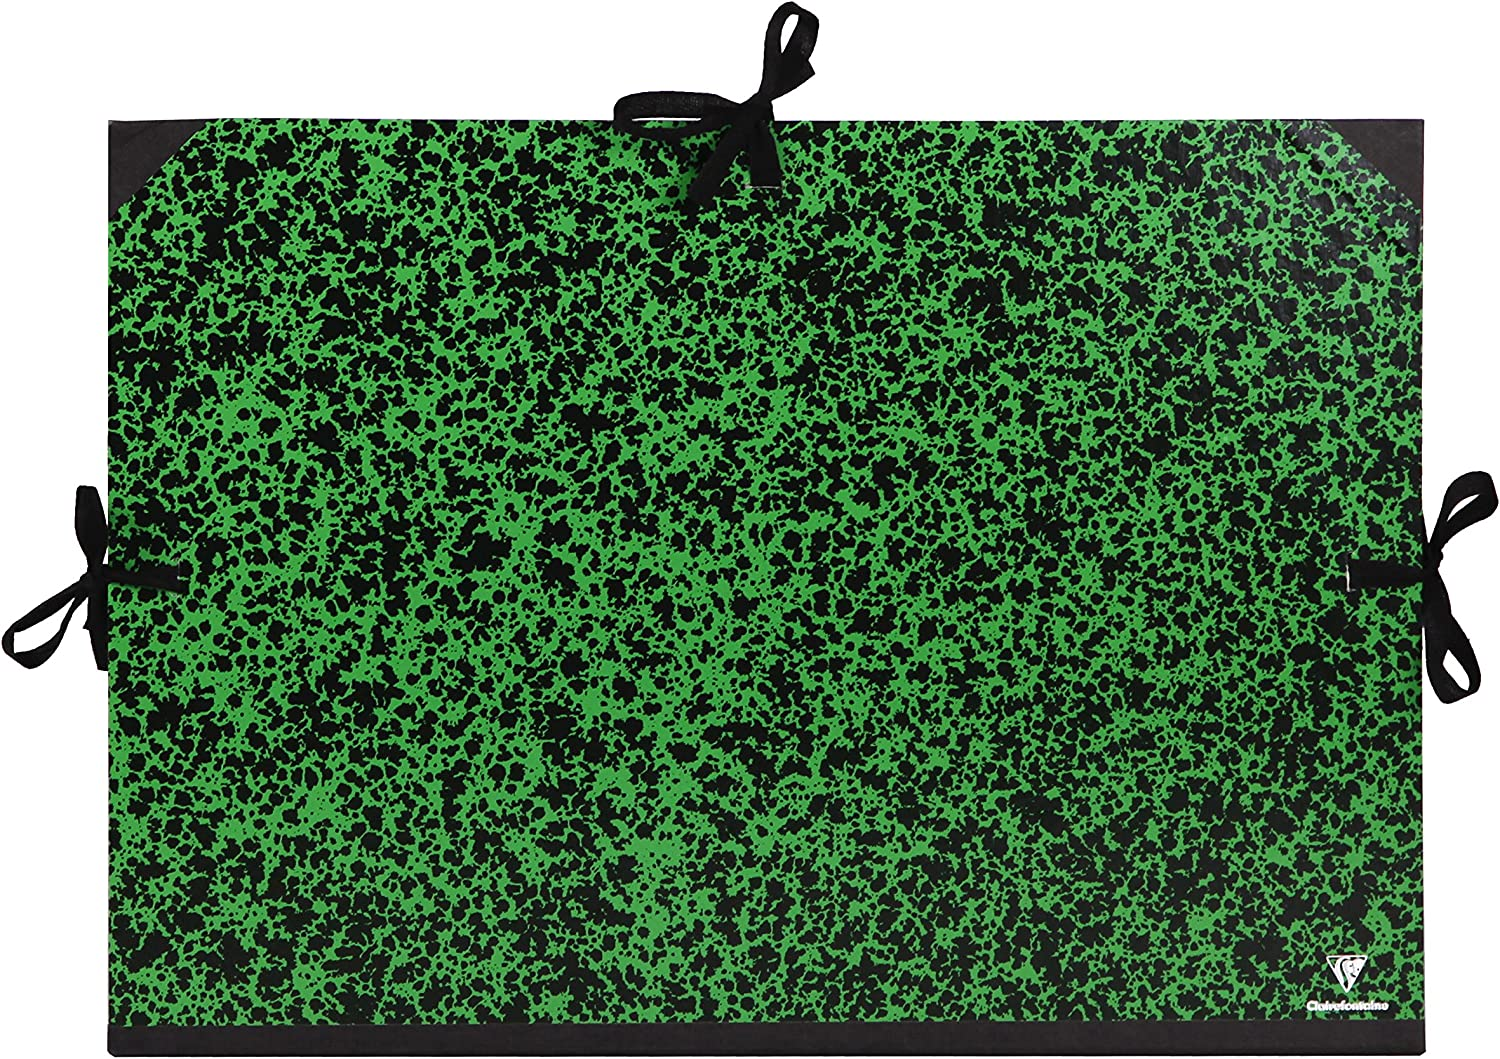 26x33cm-Green Green A4 Clairefontaine Annonay Art Folder with Ties